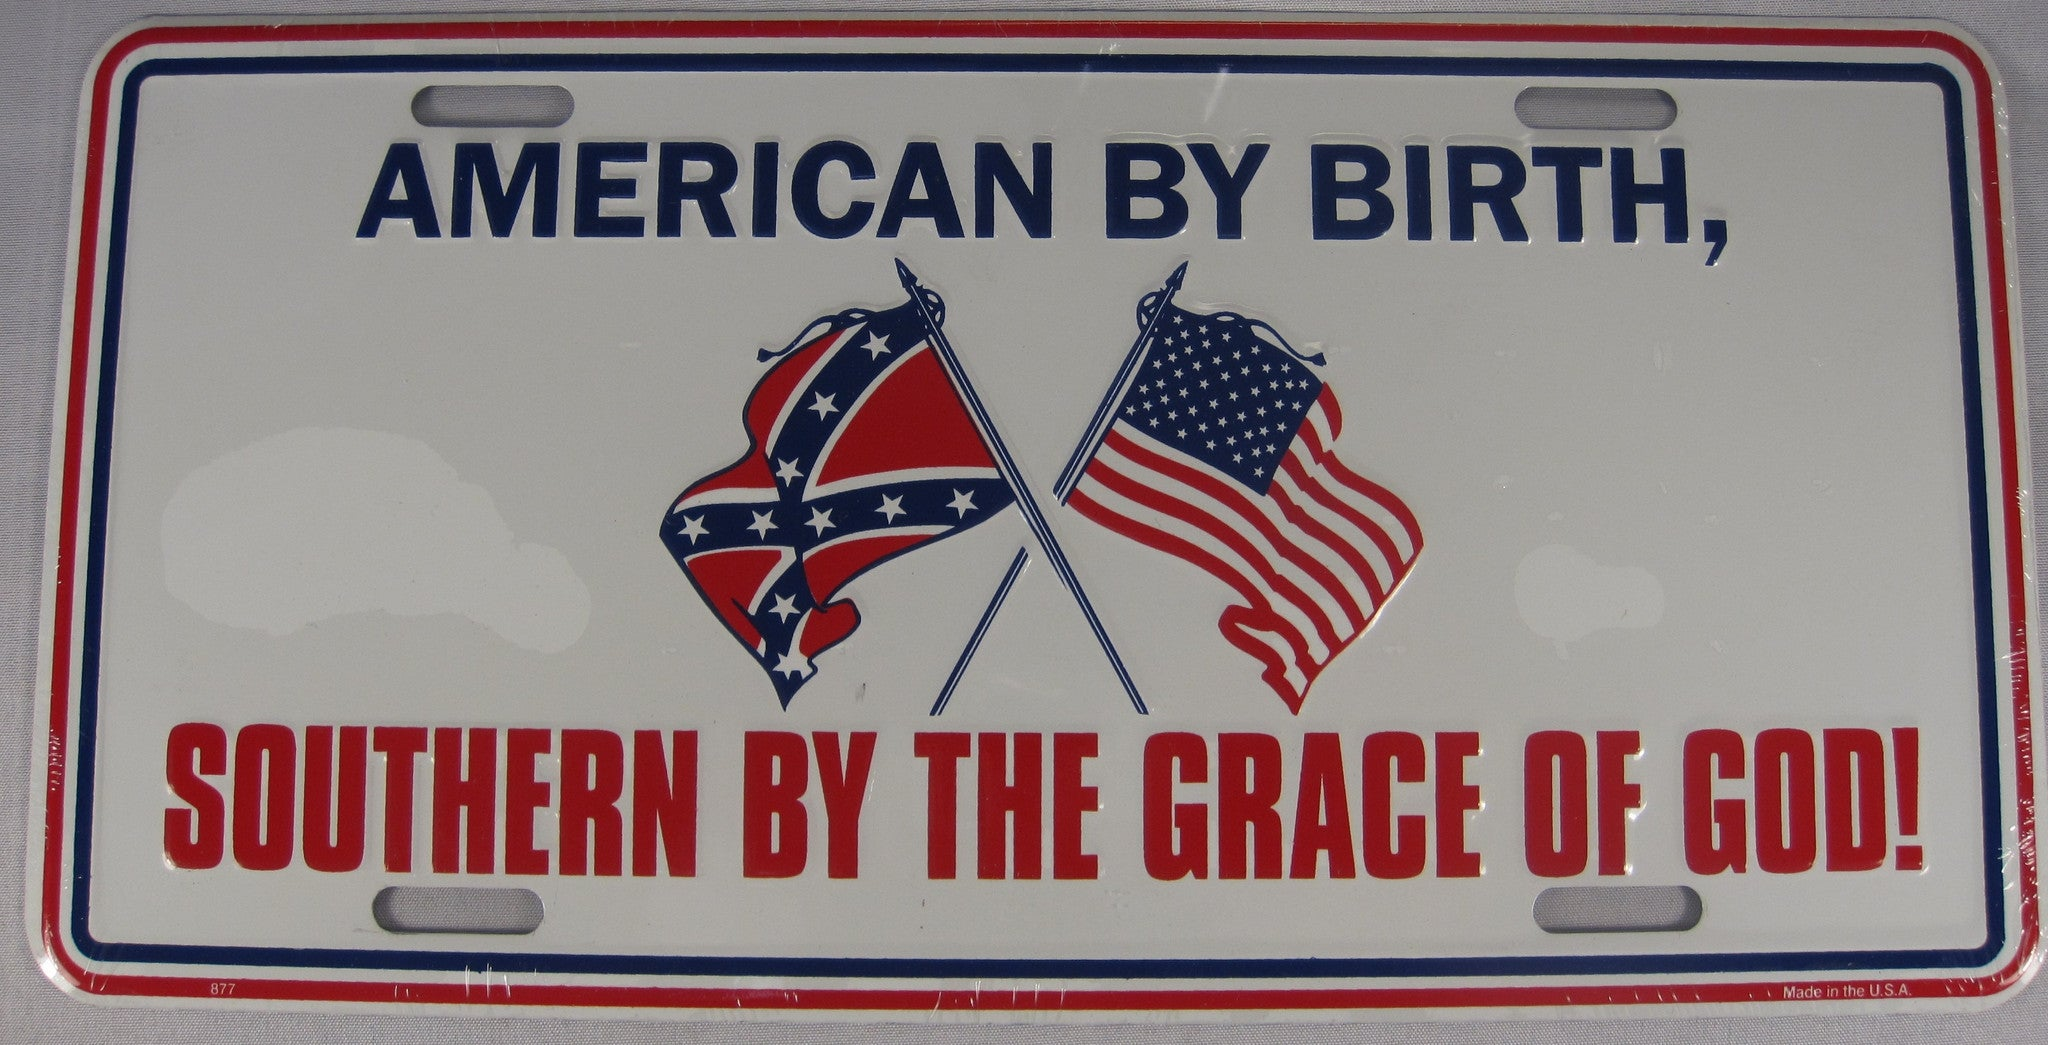 American by birth southern by the grace of god aluminum embossed license plate